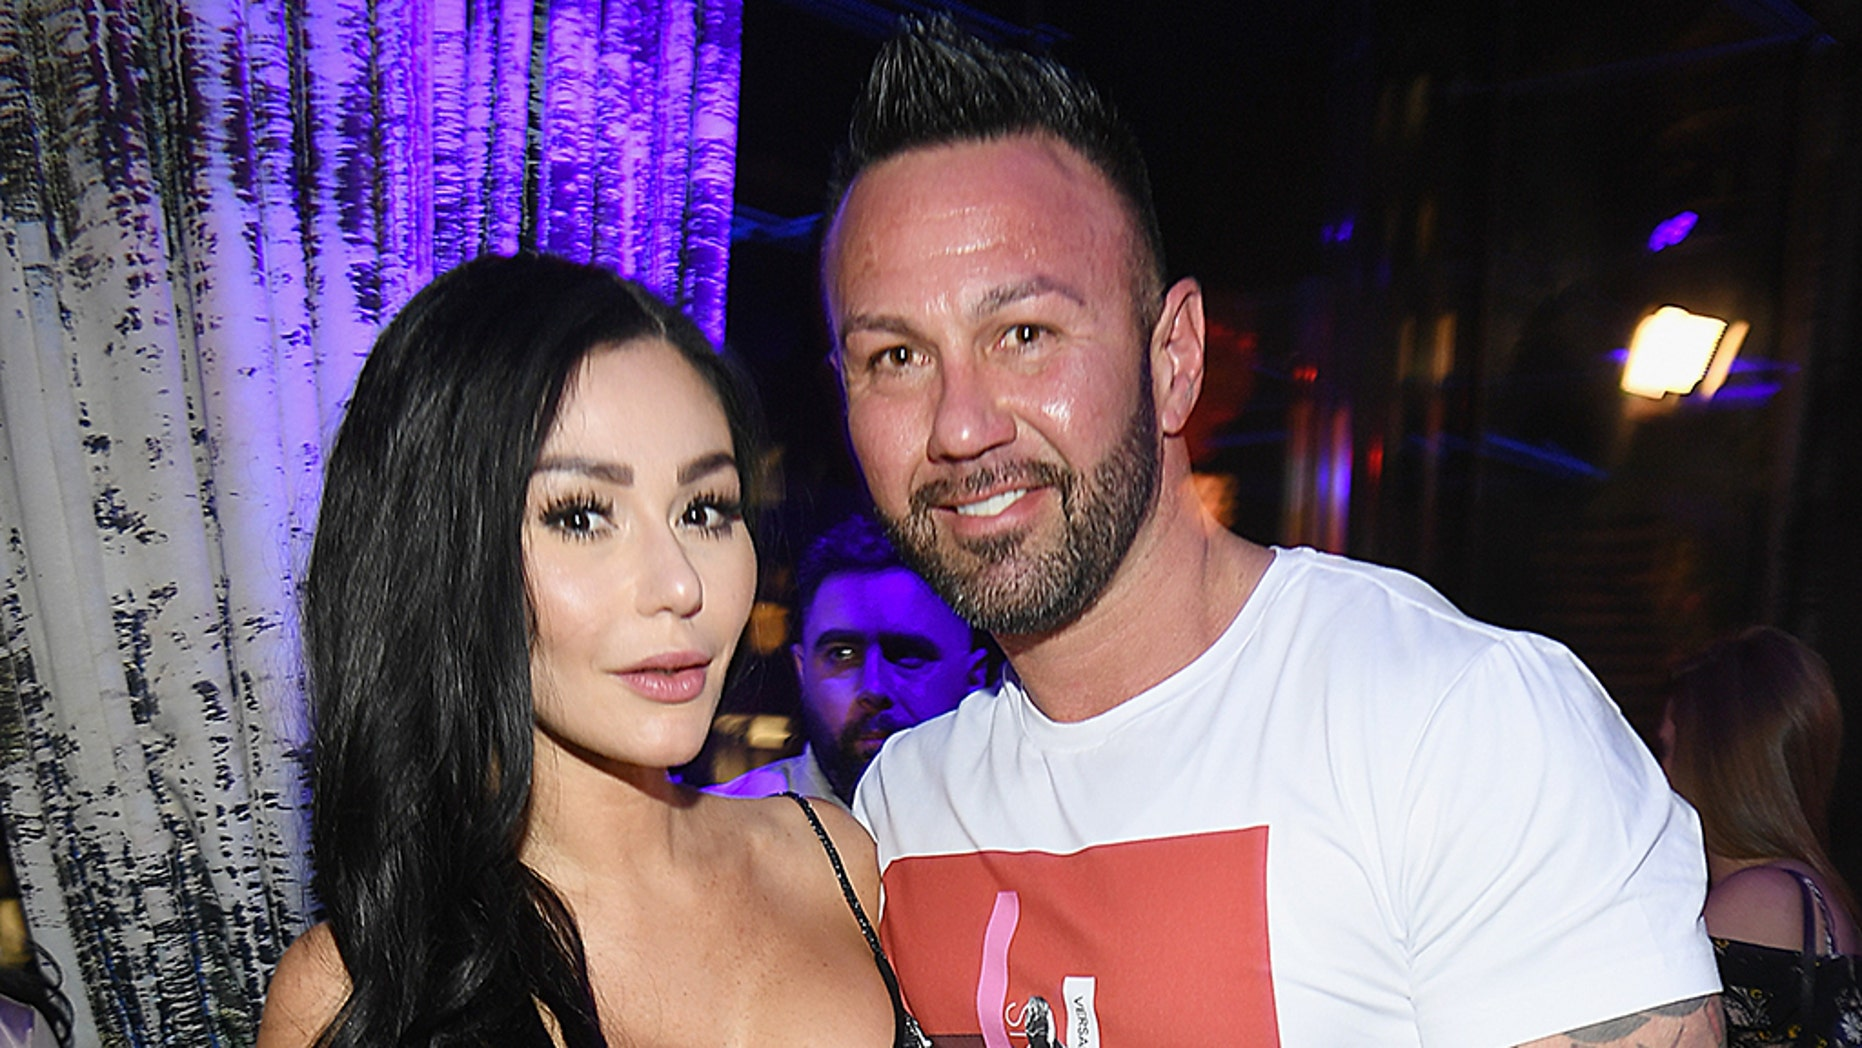 """Jersey Shore"" star Jenni ""JWoww"" Farley has reportedly called it quits with husband Roger Mathews, according to multiple outlets."